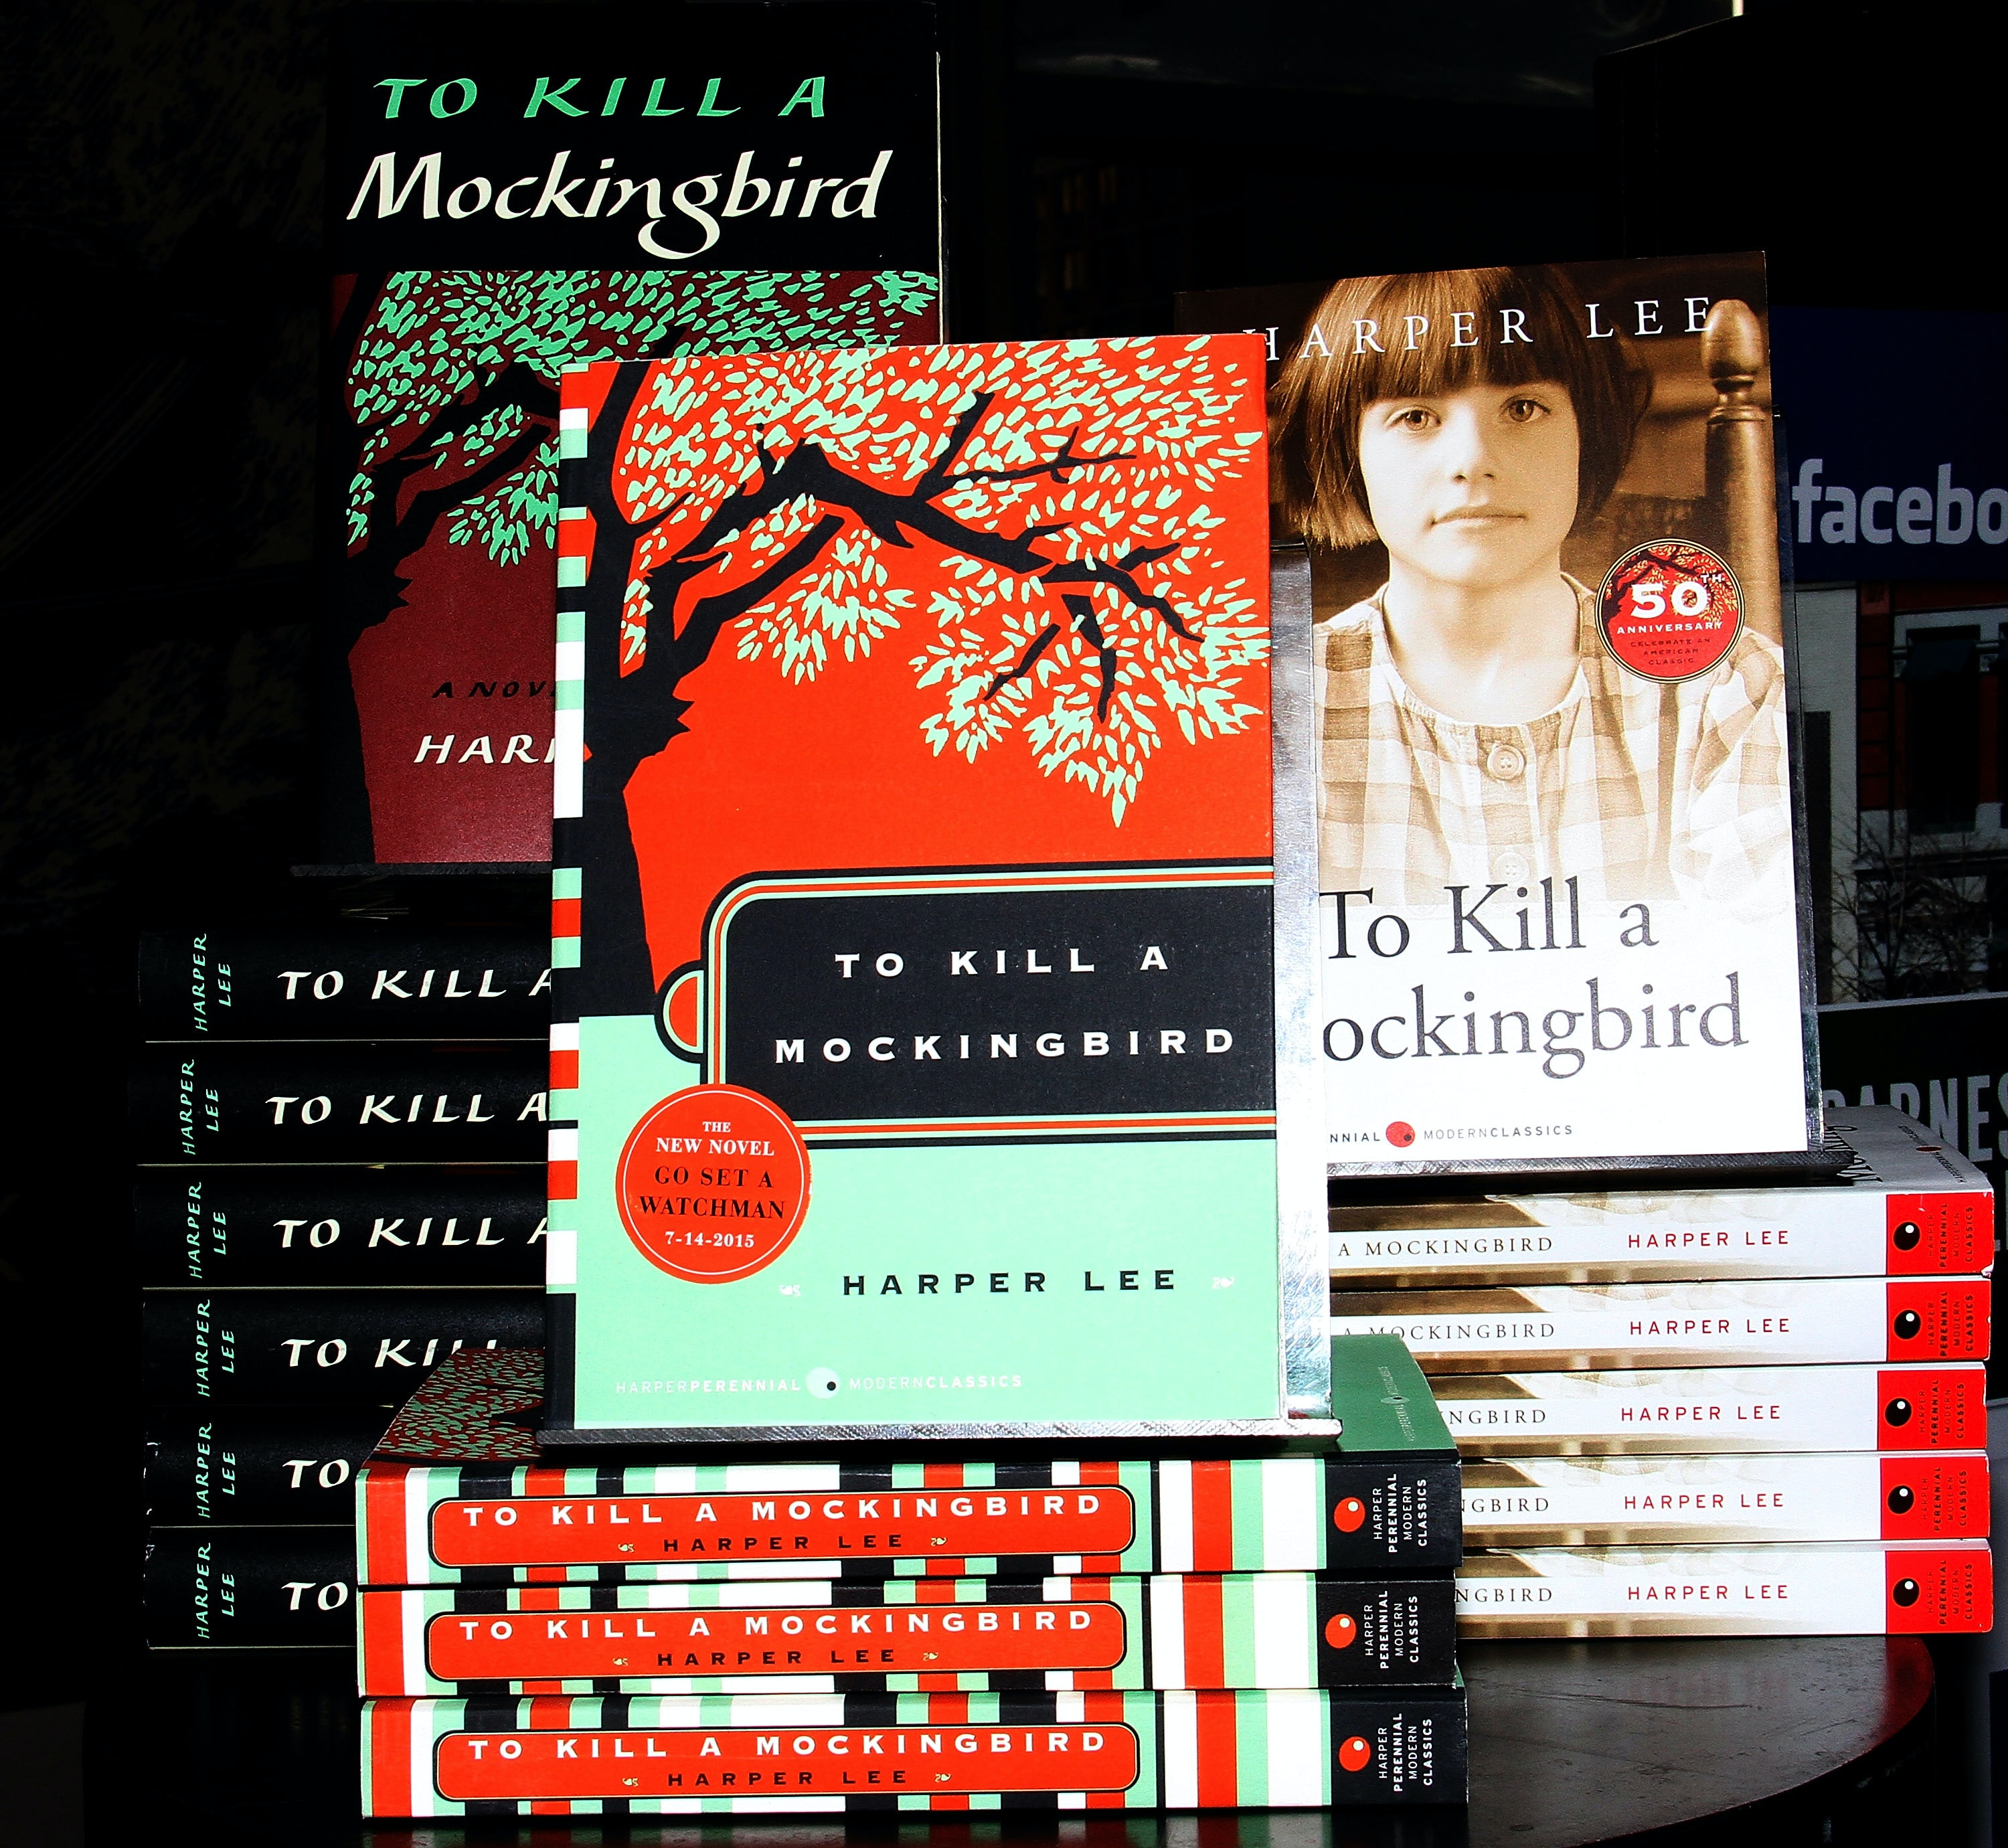 MS school bans To Kill A Mockingbird because it 'makes people uncomfortable'